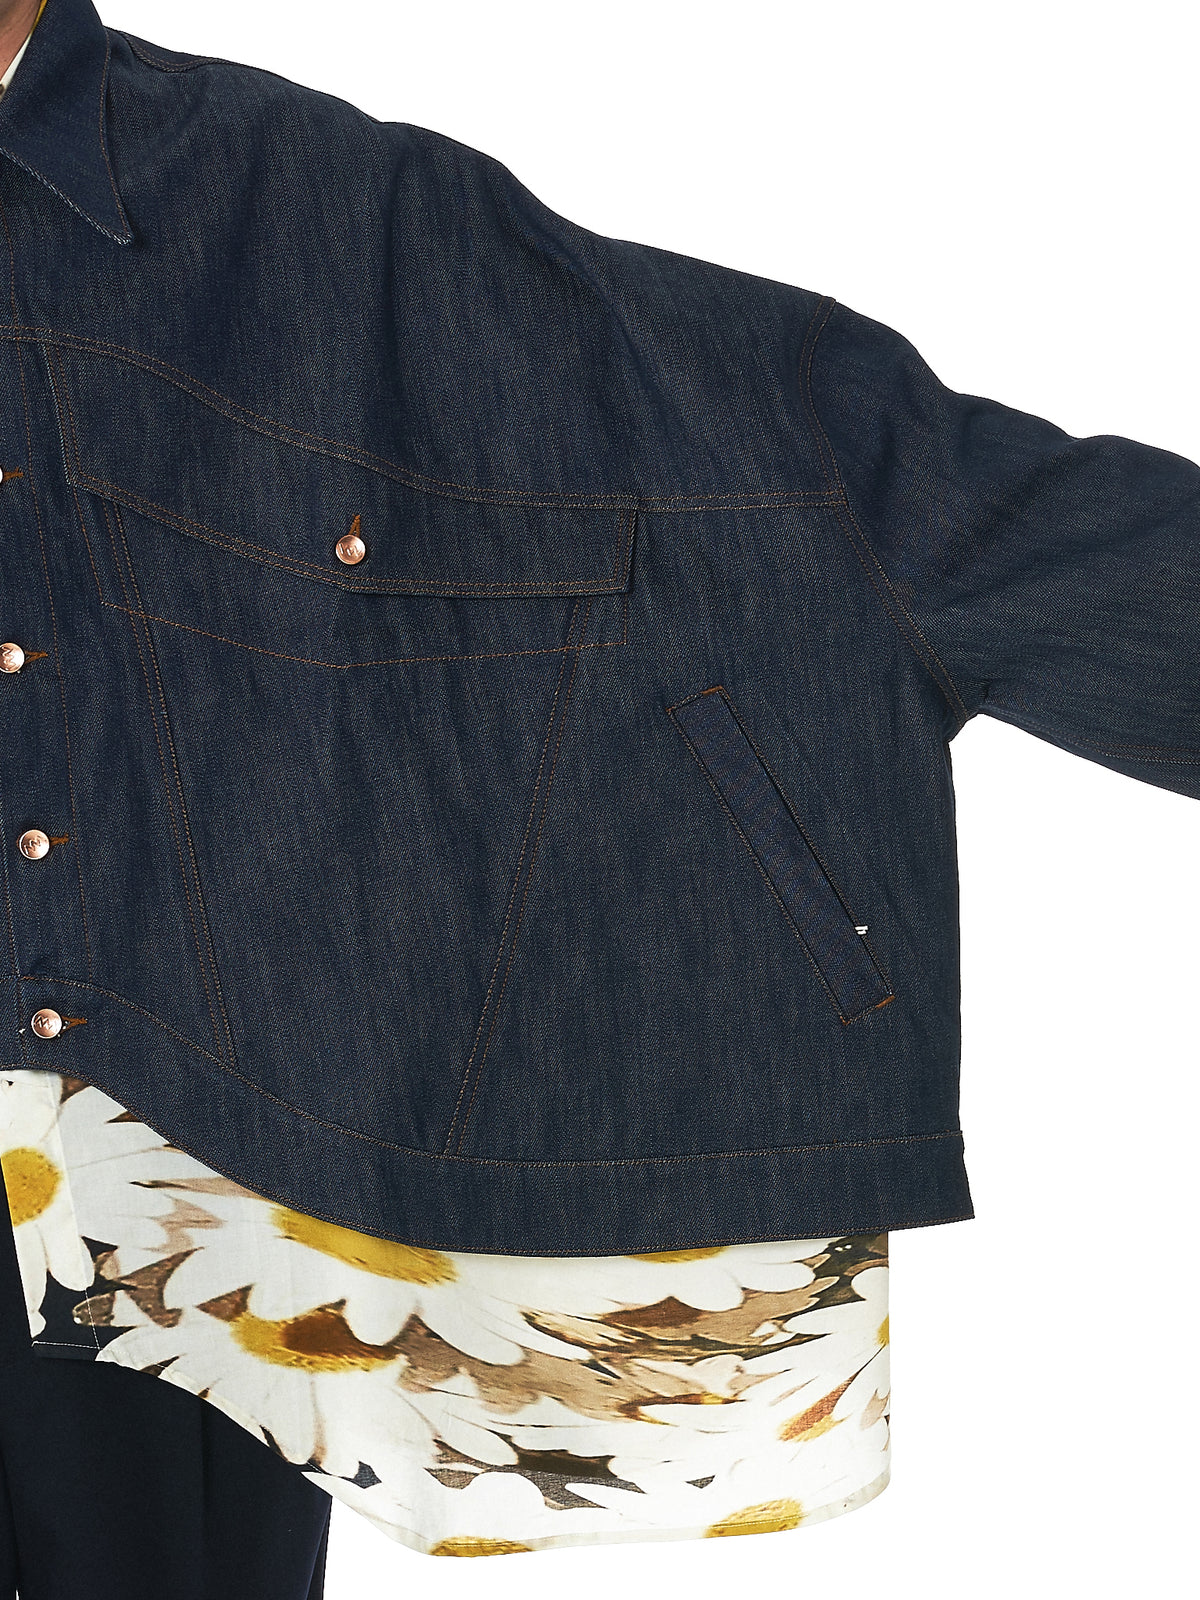 Alex Mullins Denim Jacket - Hlorenzo Detail 2